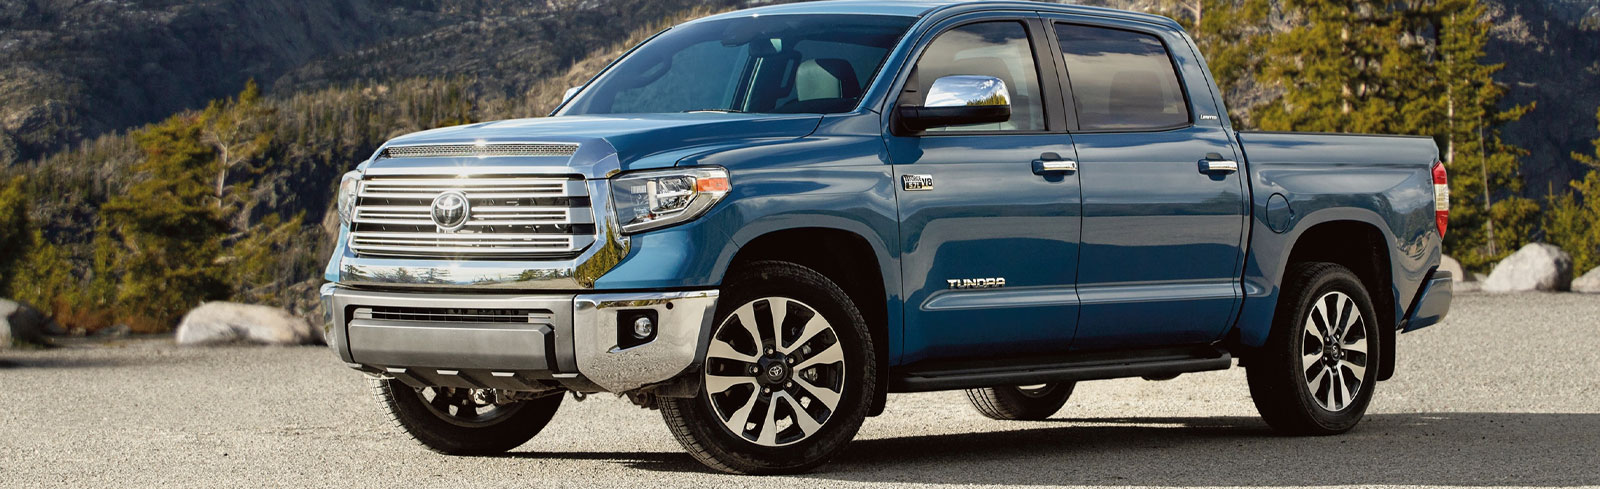 2020 Toyota Tundra Truck in Cleveland, near Cleveland Heights, OH